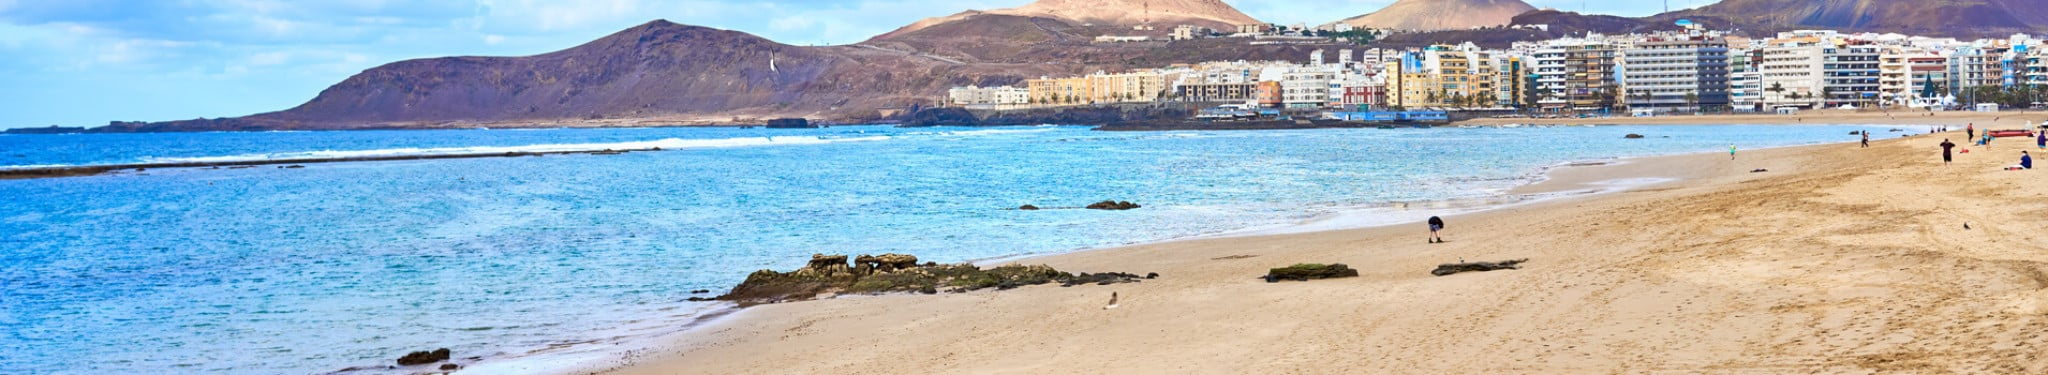 The best beaches in Gran Canaria are some of the finest in Europe, so make sure you visit a couple while on holiday